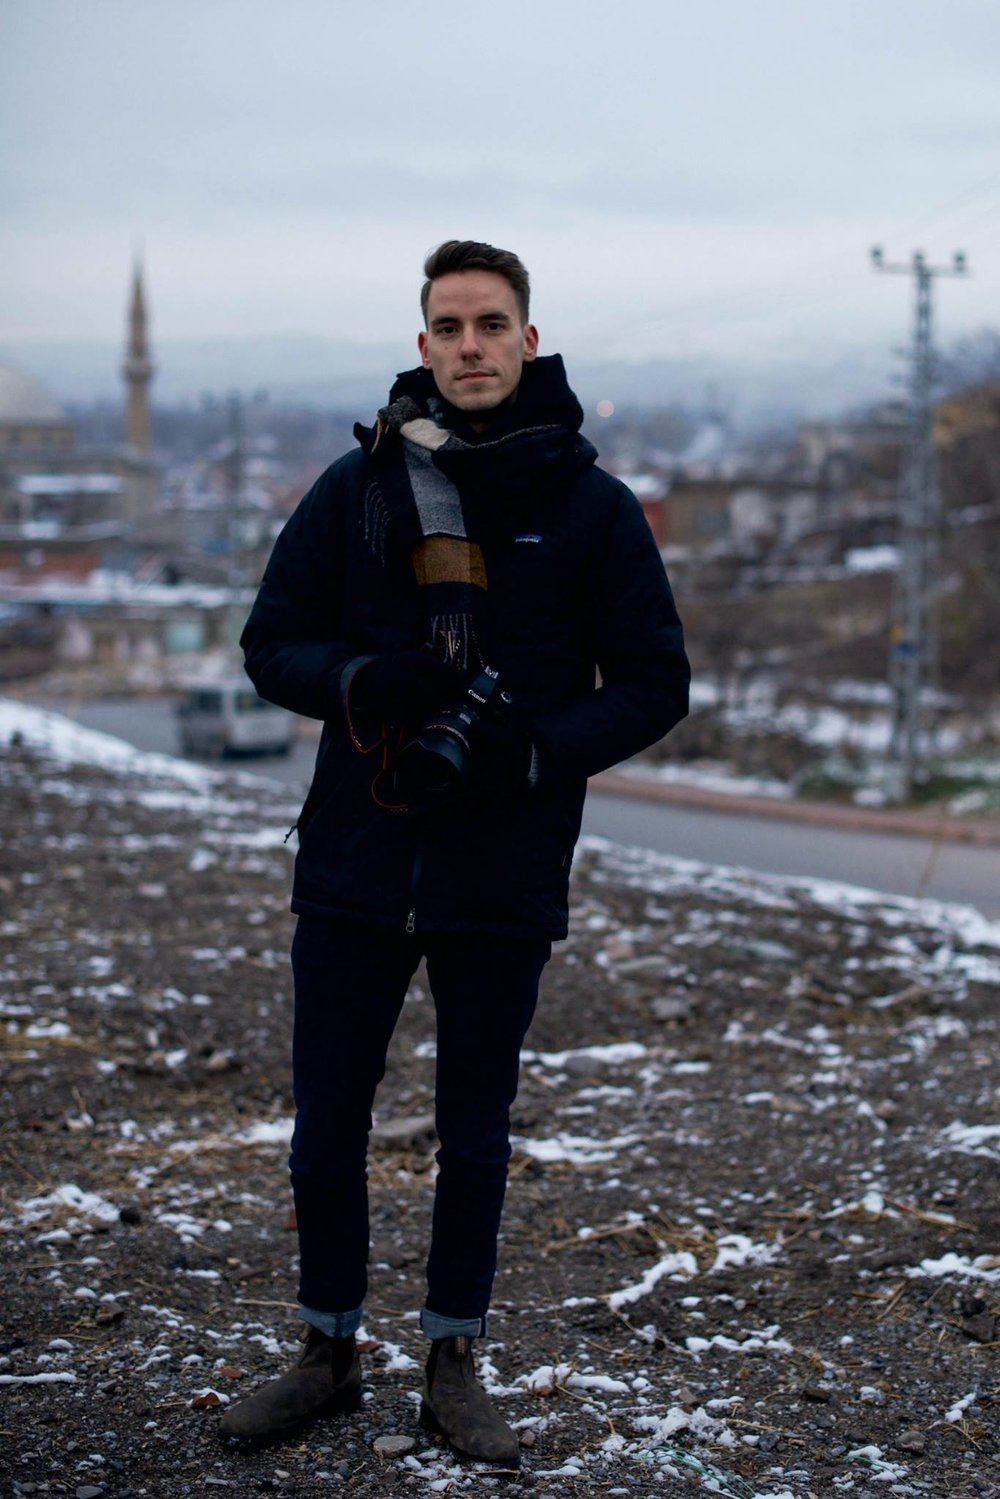 Reporting in Kayseri, Turkey in Dec. 2017.